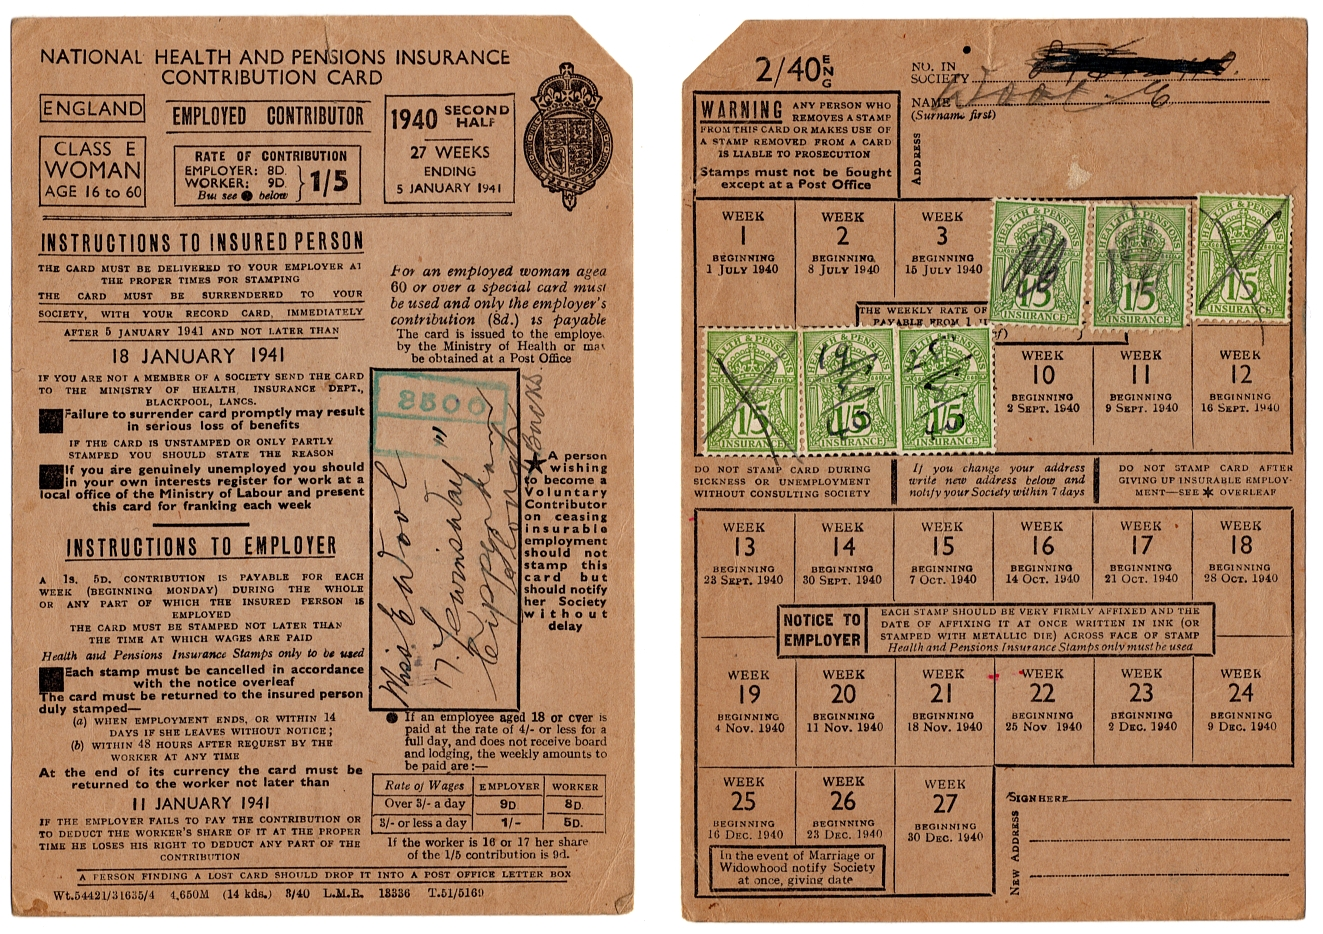 1940 British National Health Insurance card for an employed woman